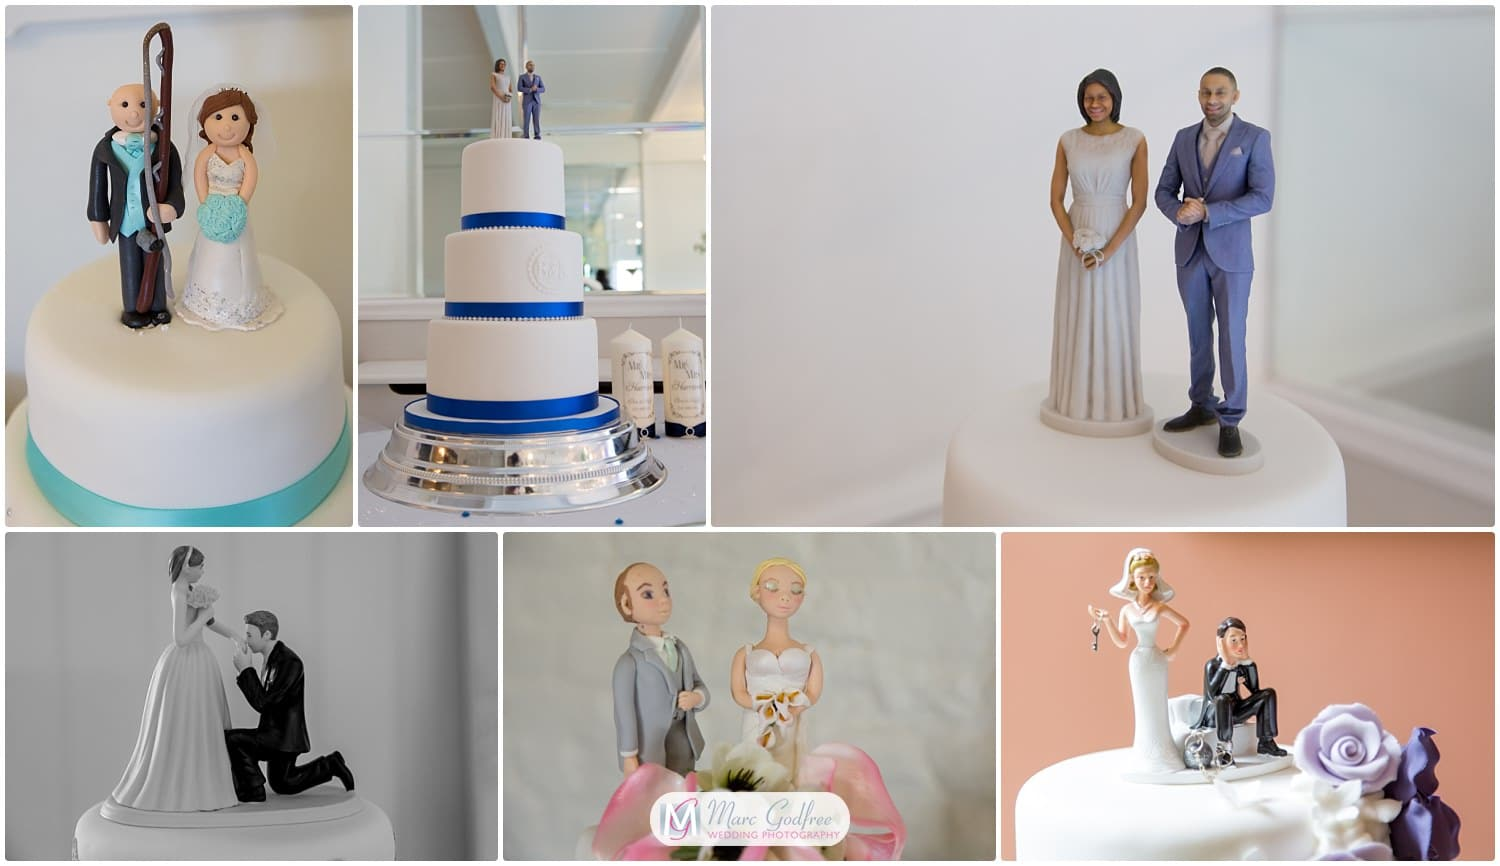 Wedding cake centre piece ideas you'll love-classic figurines